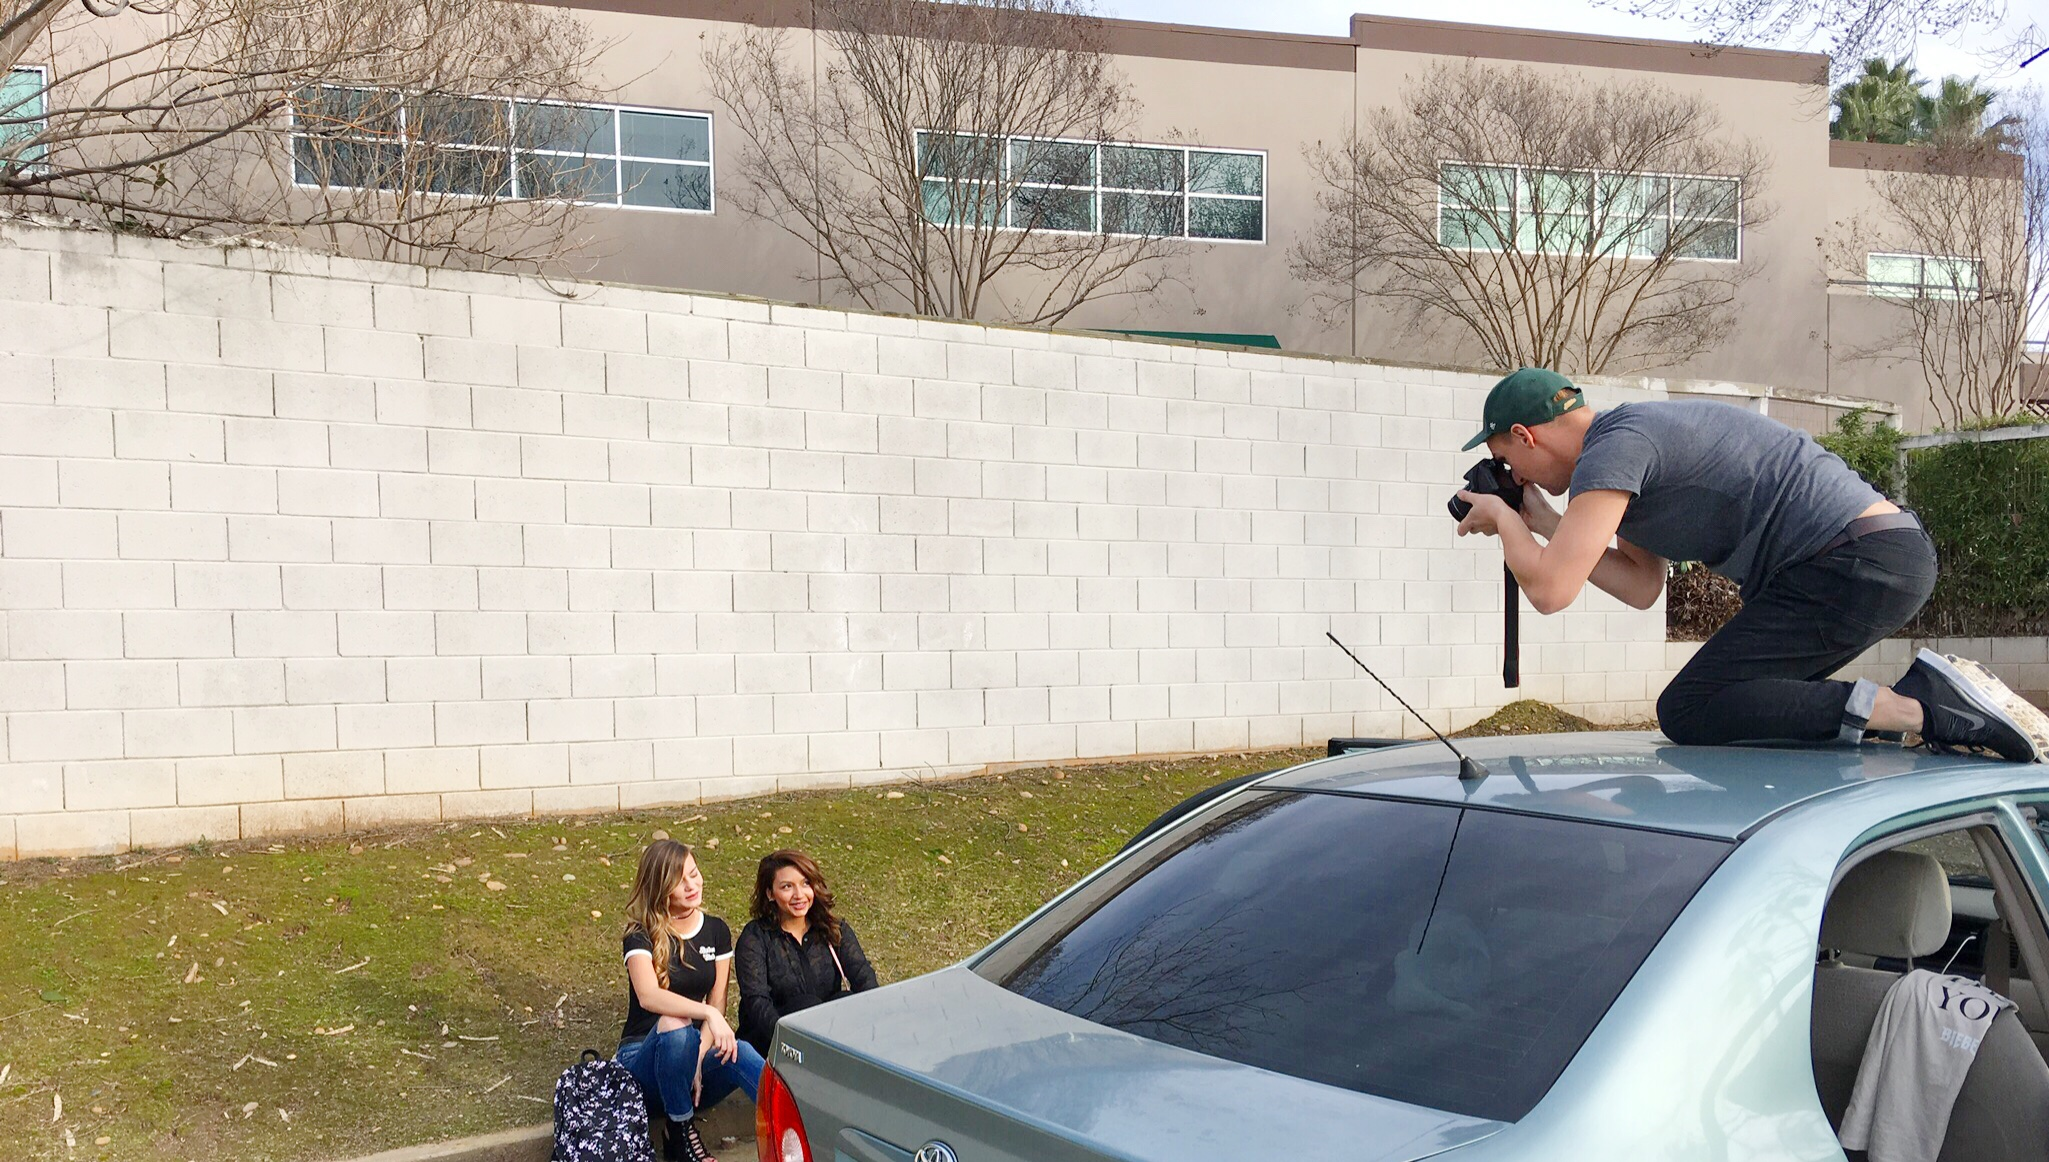 Getting the Shot on Top of a Car